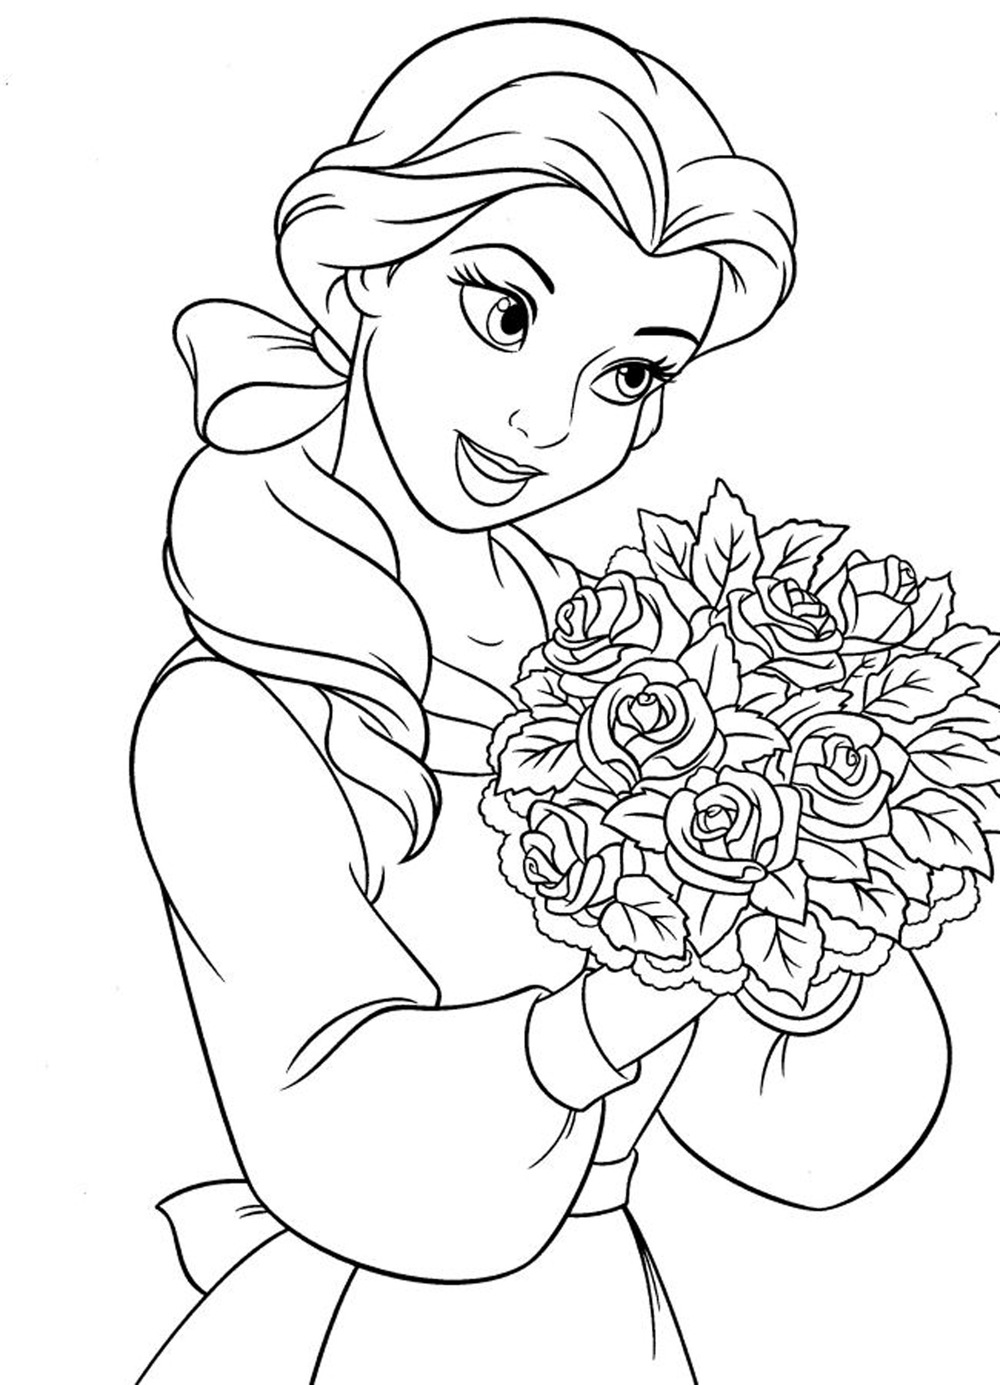 Disney Princess Coloring Book – Arisbeth Cruz Hernandez | colouring pages for disney princesses